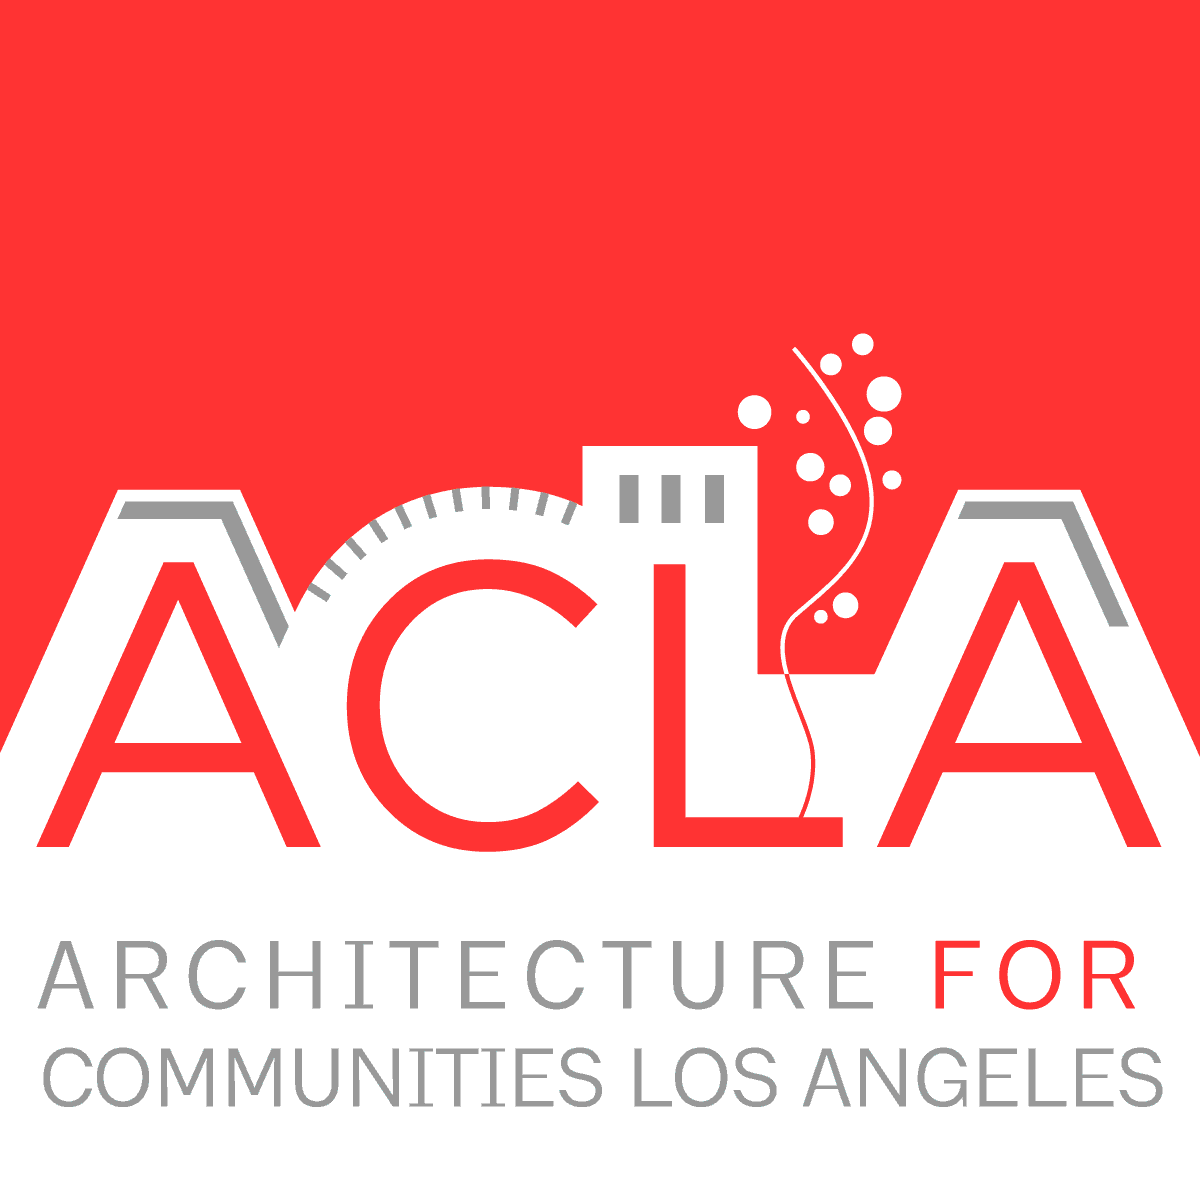 Clay has been elected to be Vice President of the ACLA in 2021 (and President-elect in 2022)